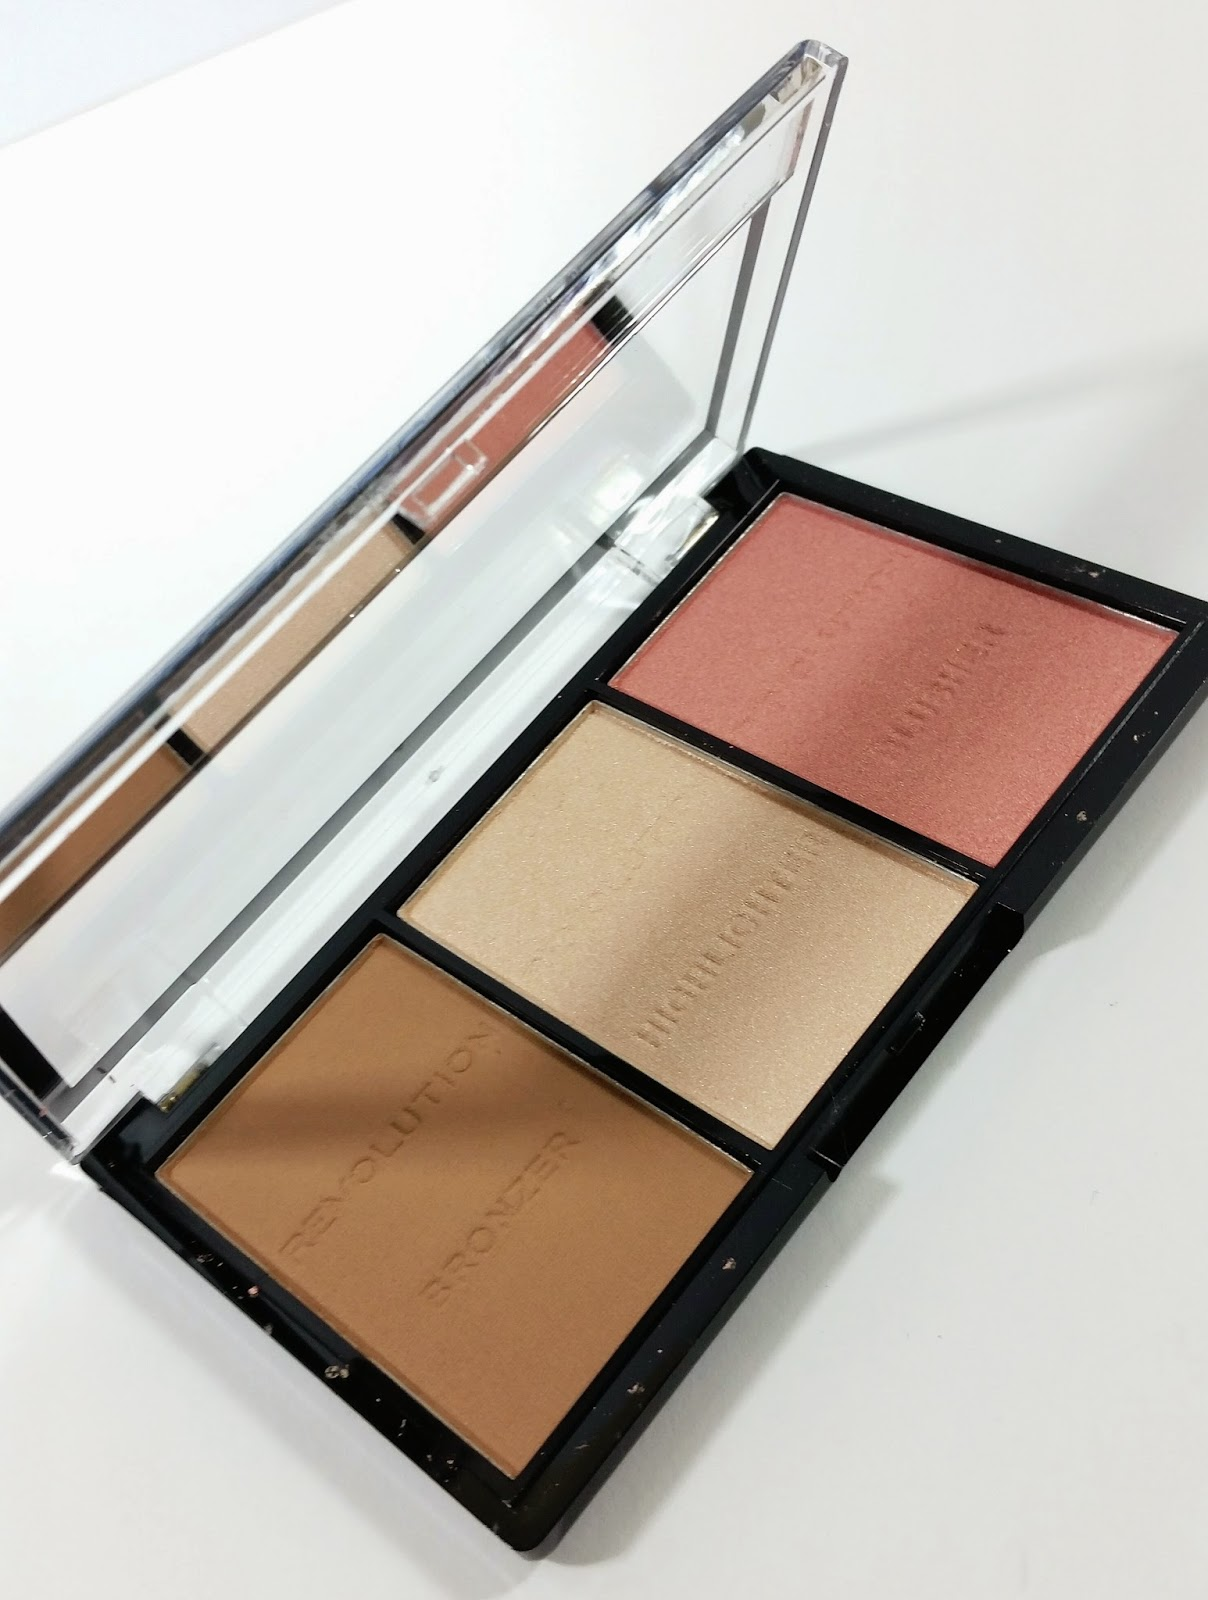 ... Makeup Revolution never really feels cheap and their palettes all close tightly with a nice click. I don't have to worry about any of them opening up in ...